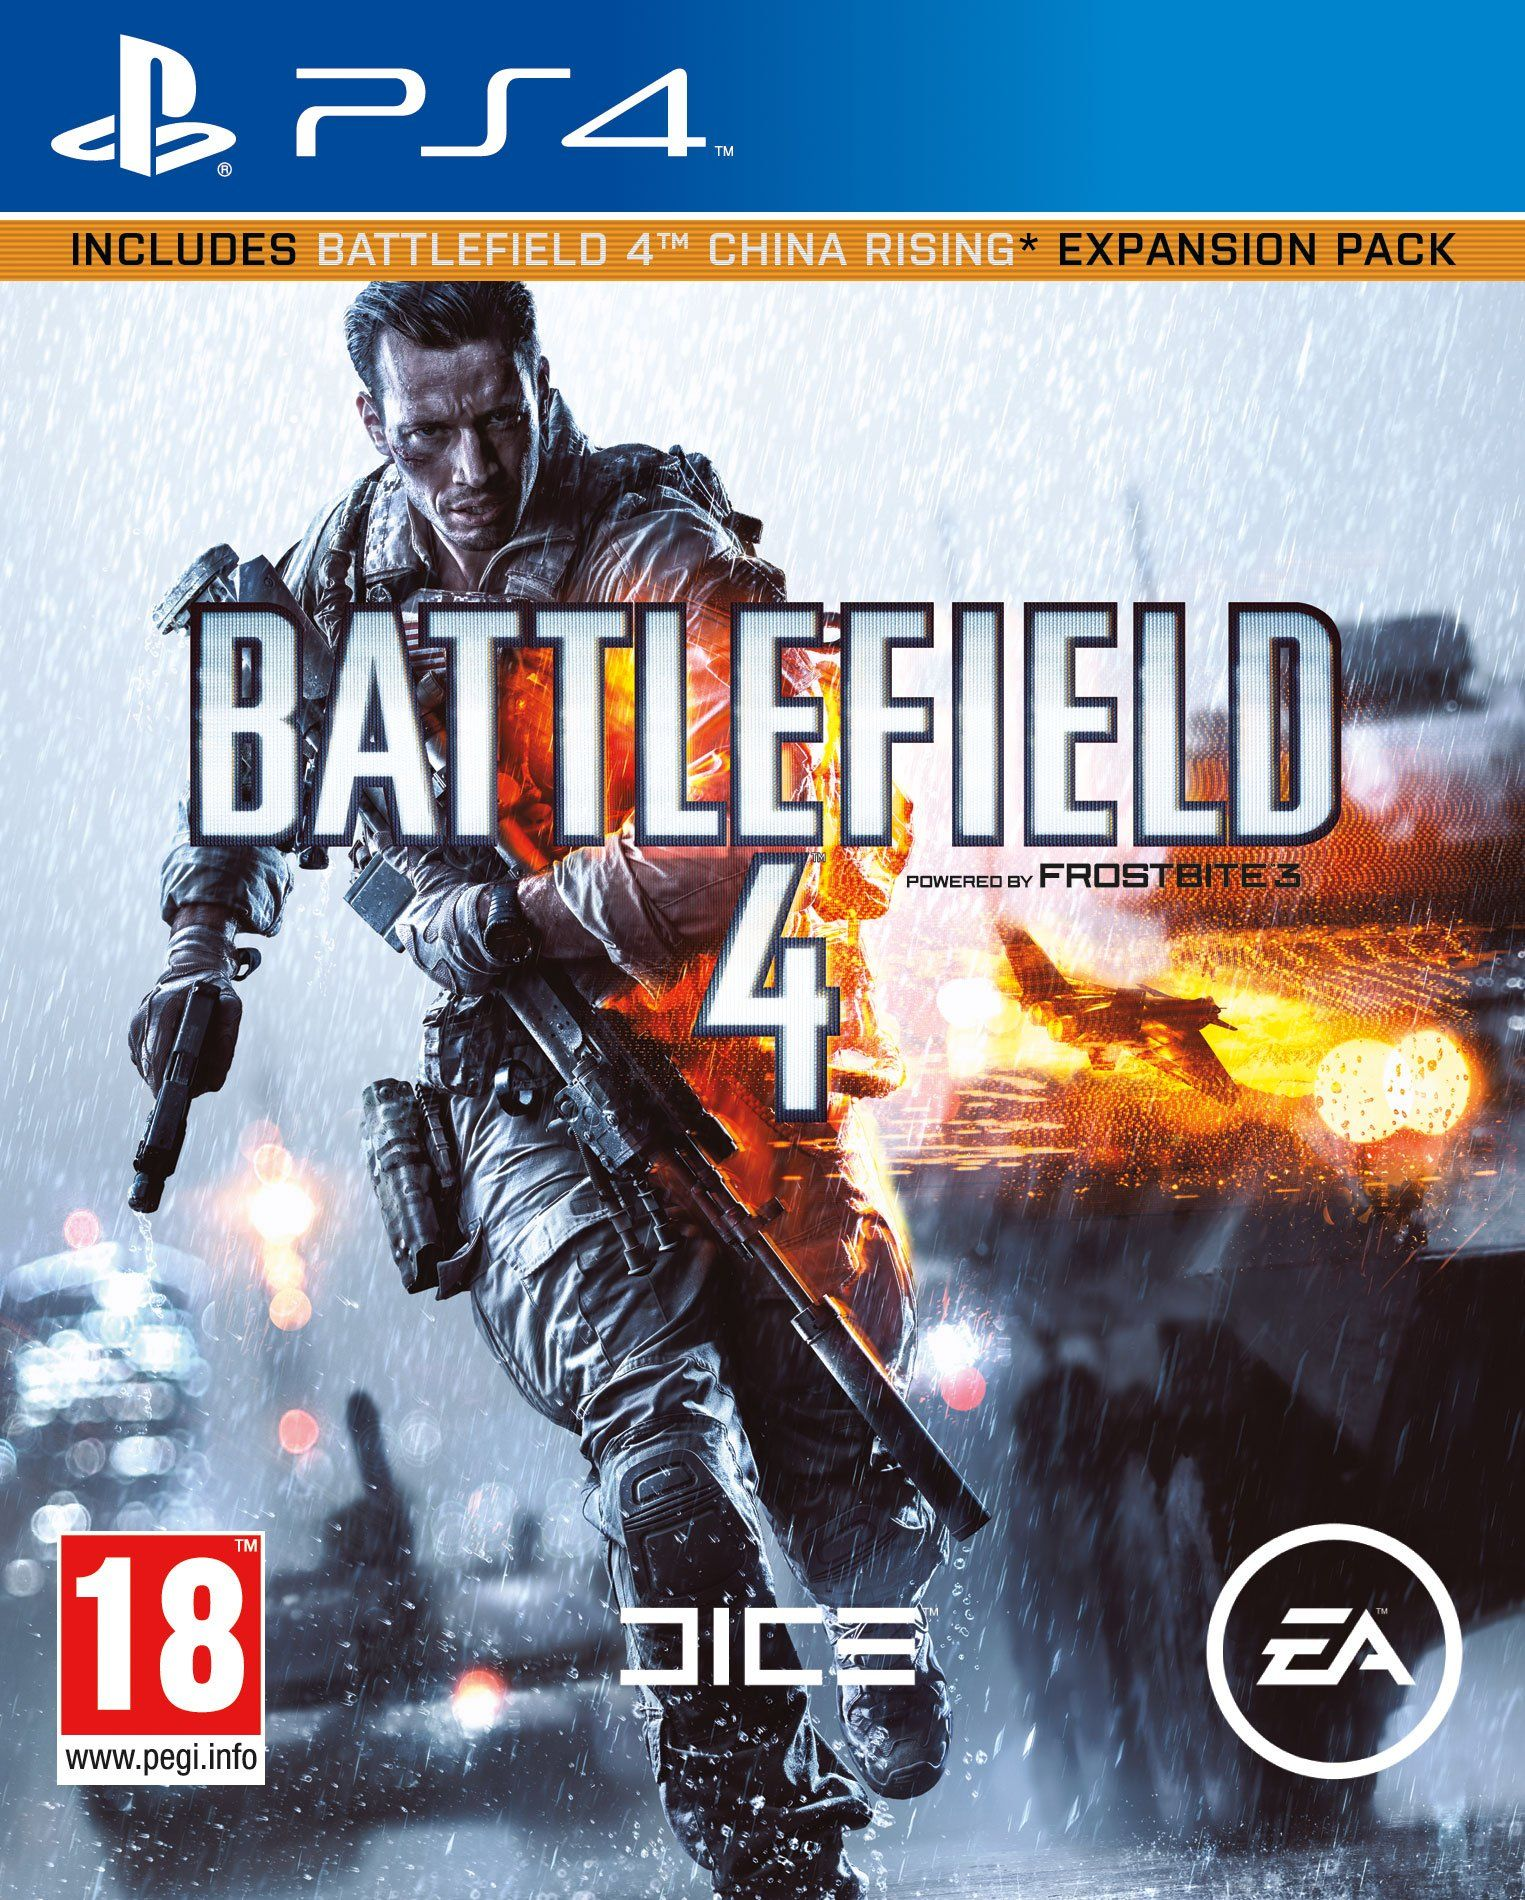 Ps4 Games Battlefield 4 Xbox One Games Xbox 360 Games